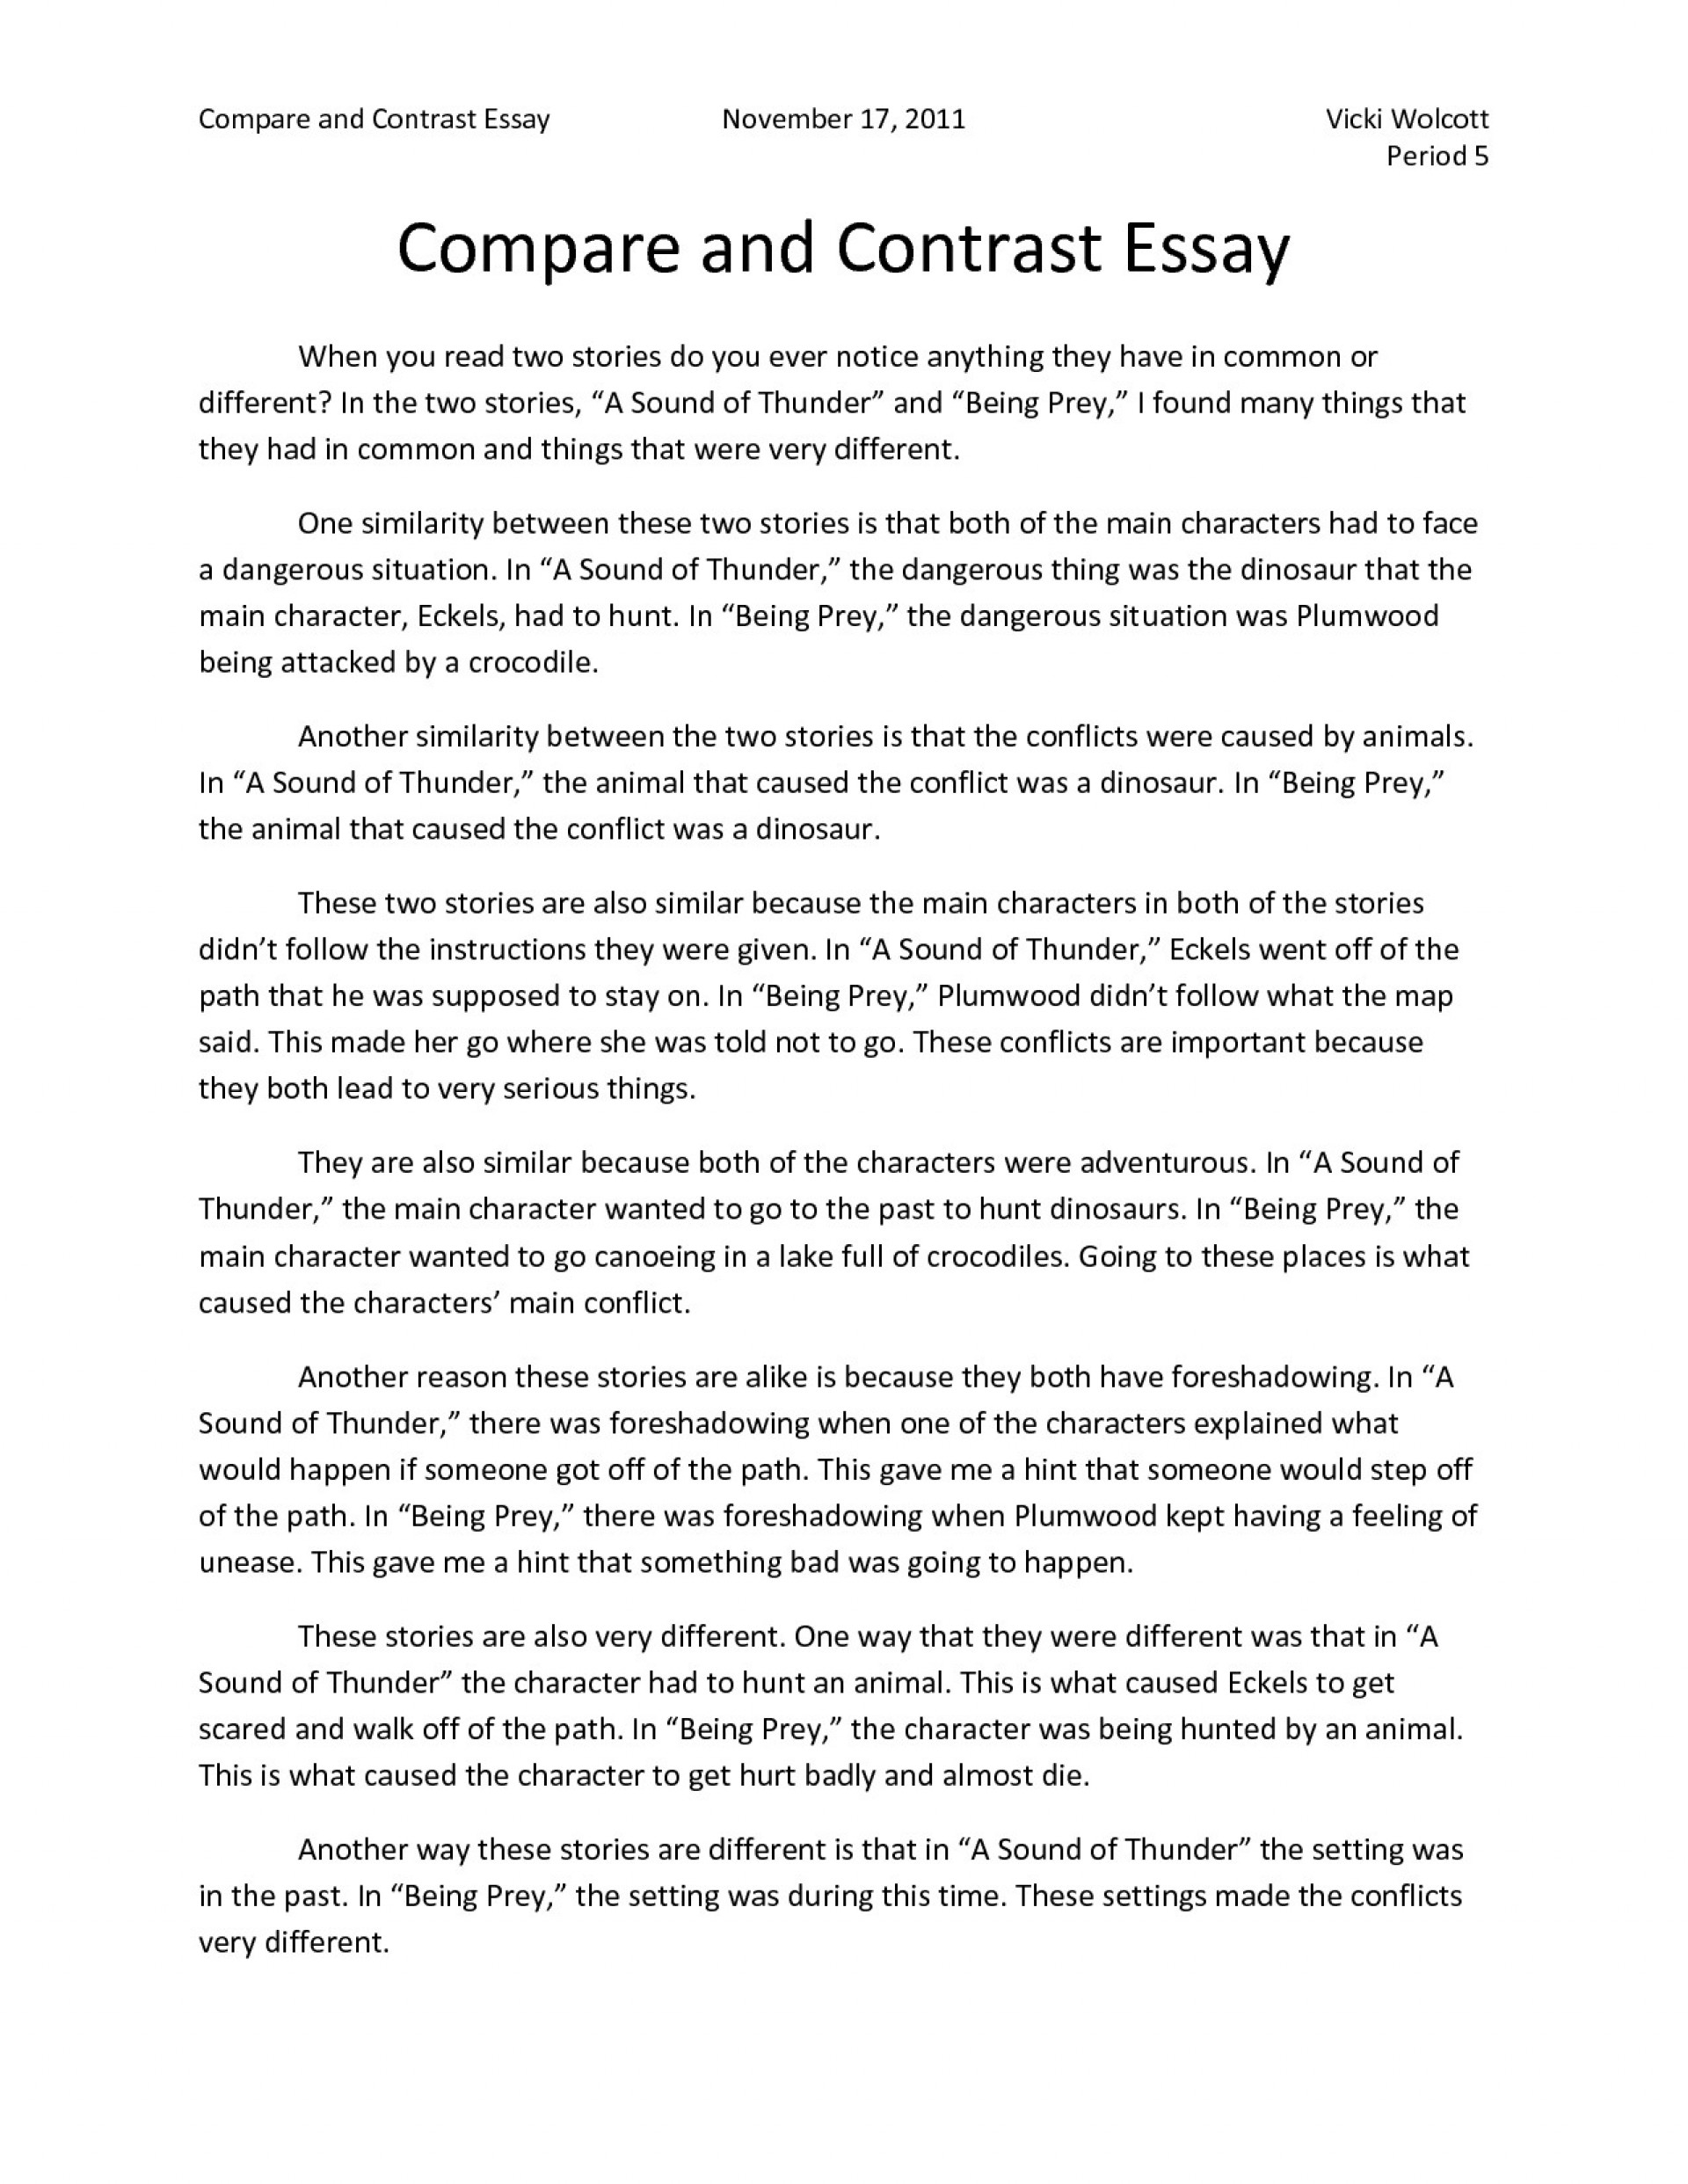 5th grade compare and contrast essay examples